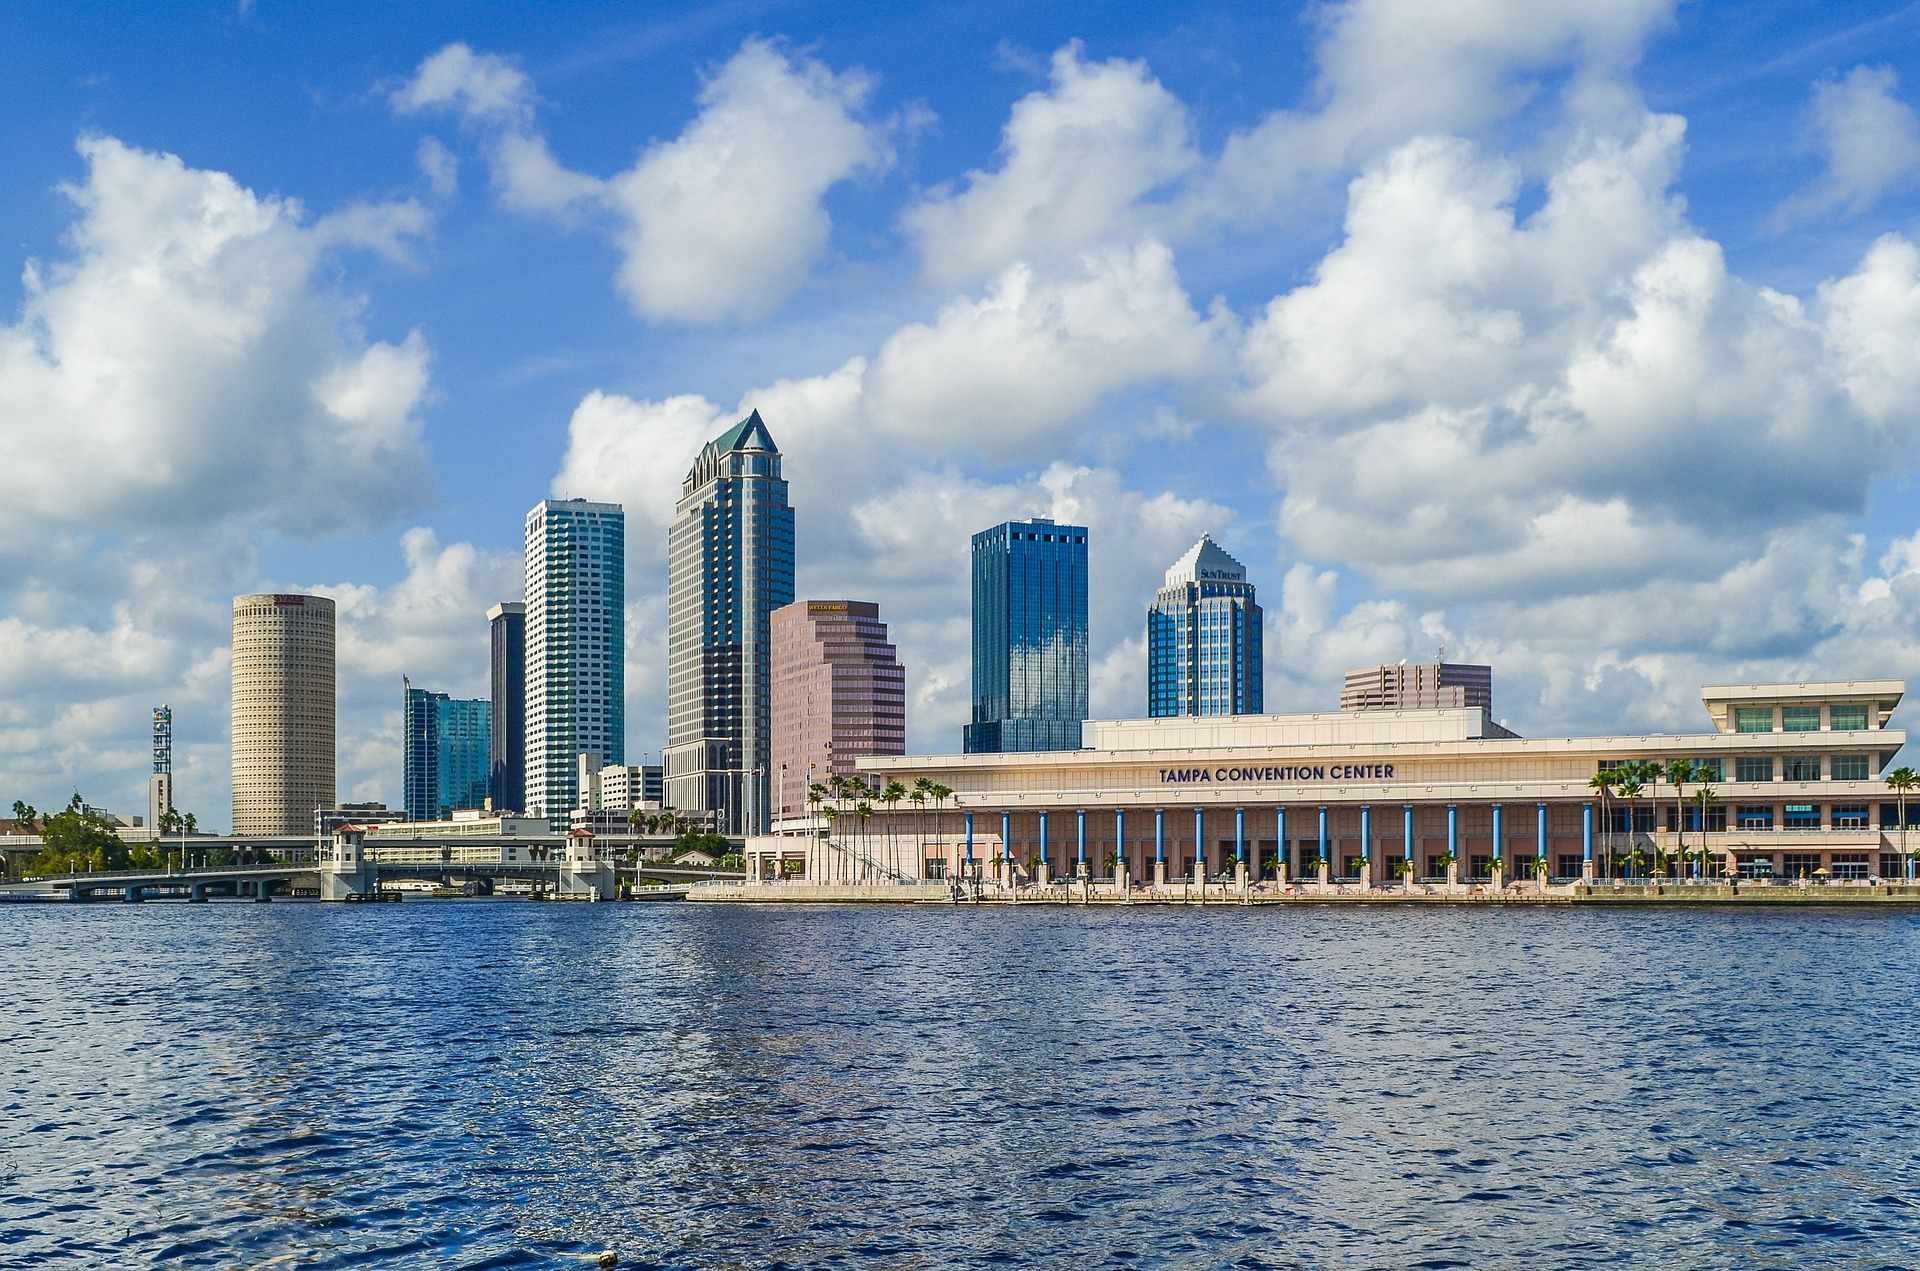 best attractions in Tampa, where to eat and stay, and tips